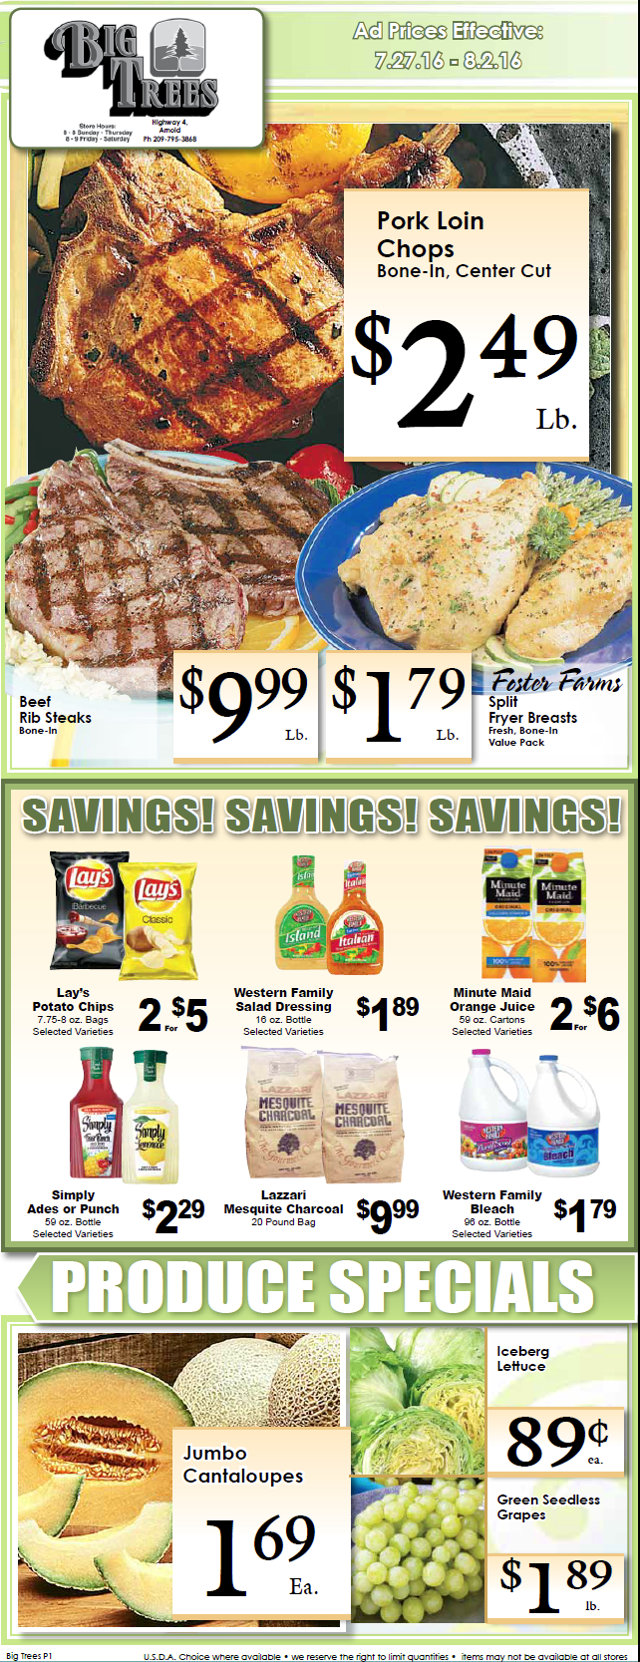 Big Trees Market Weekly Ad & Specials Through August 2nd